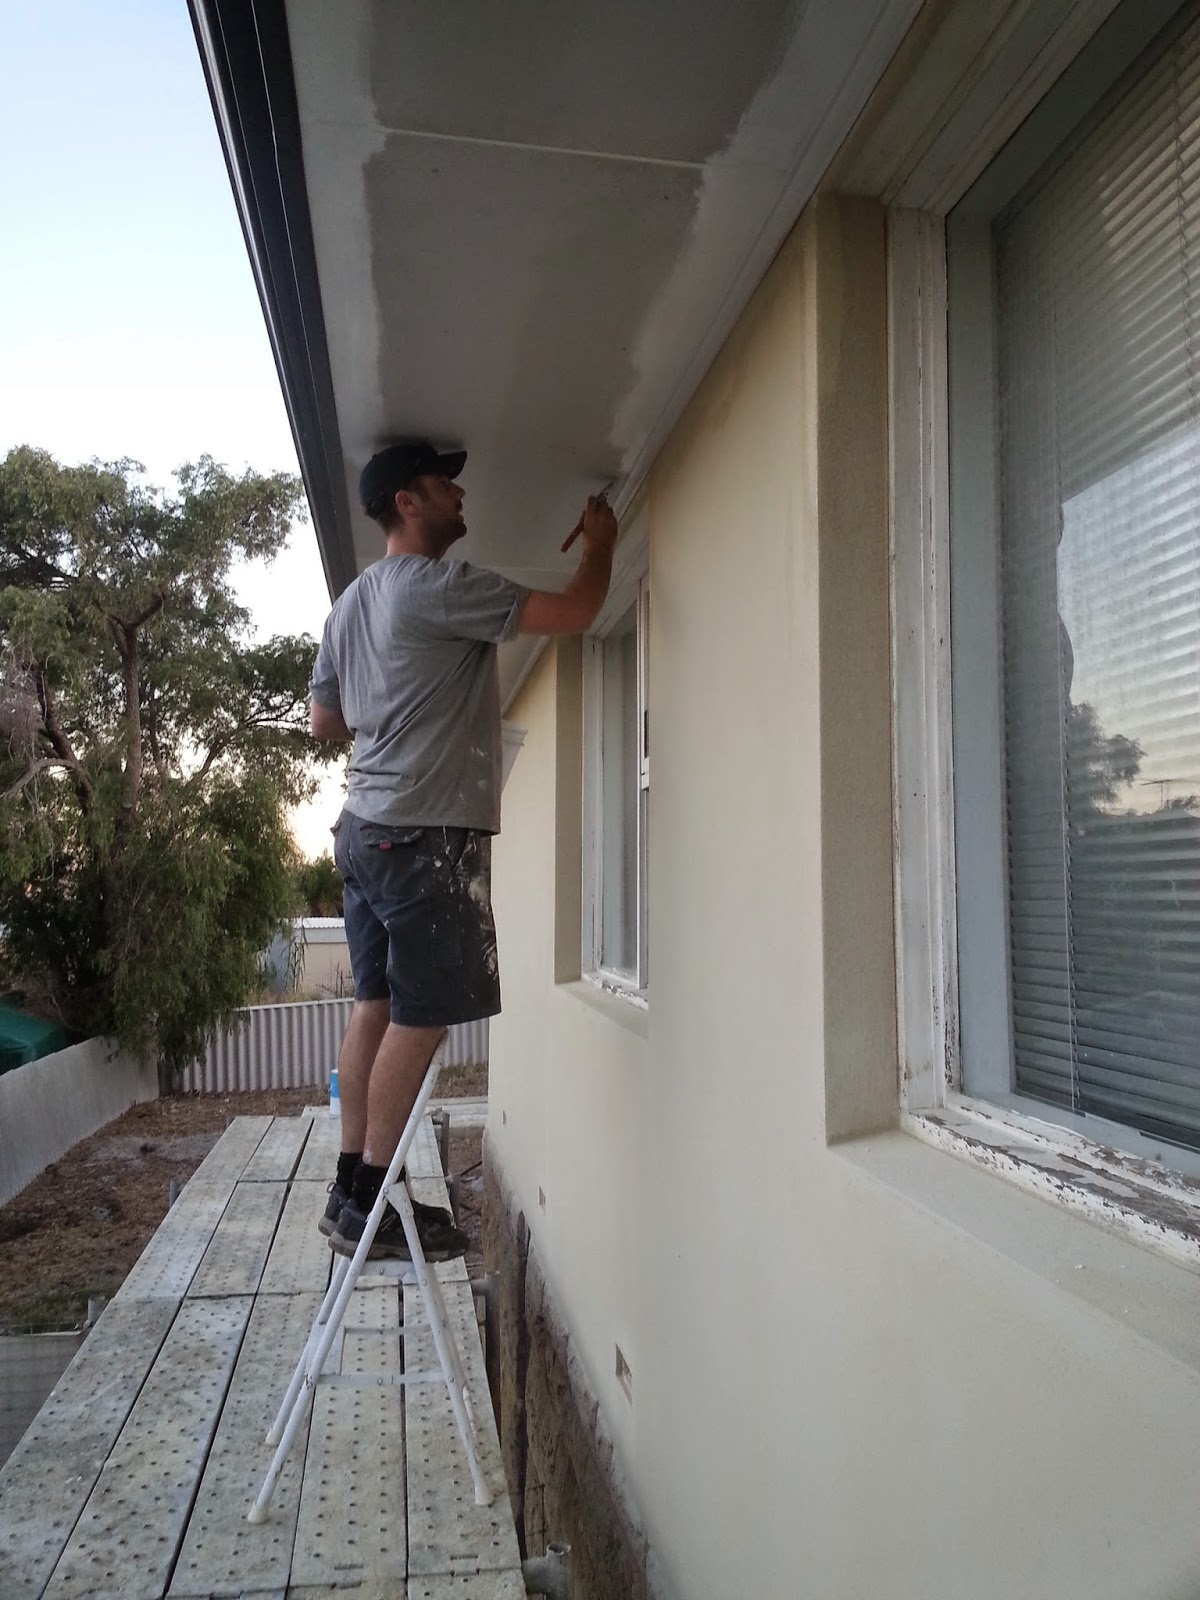 jarrah jungle painting the exterior walls and window